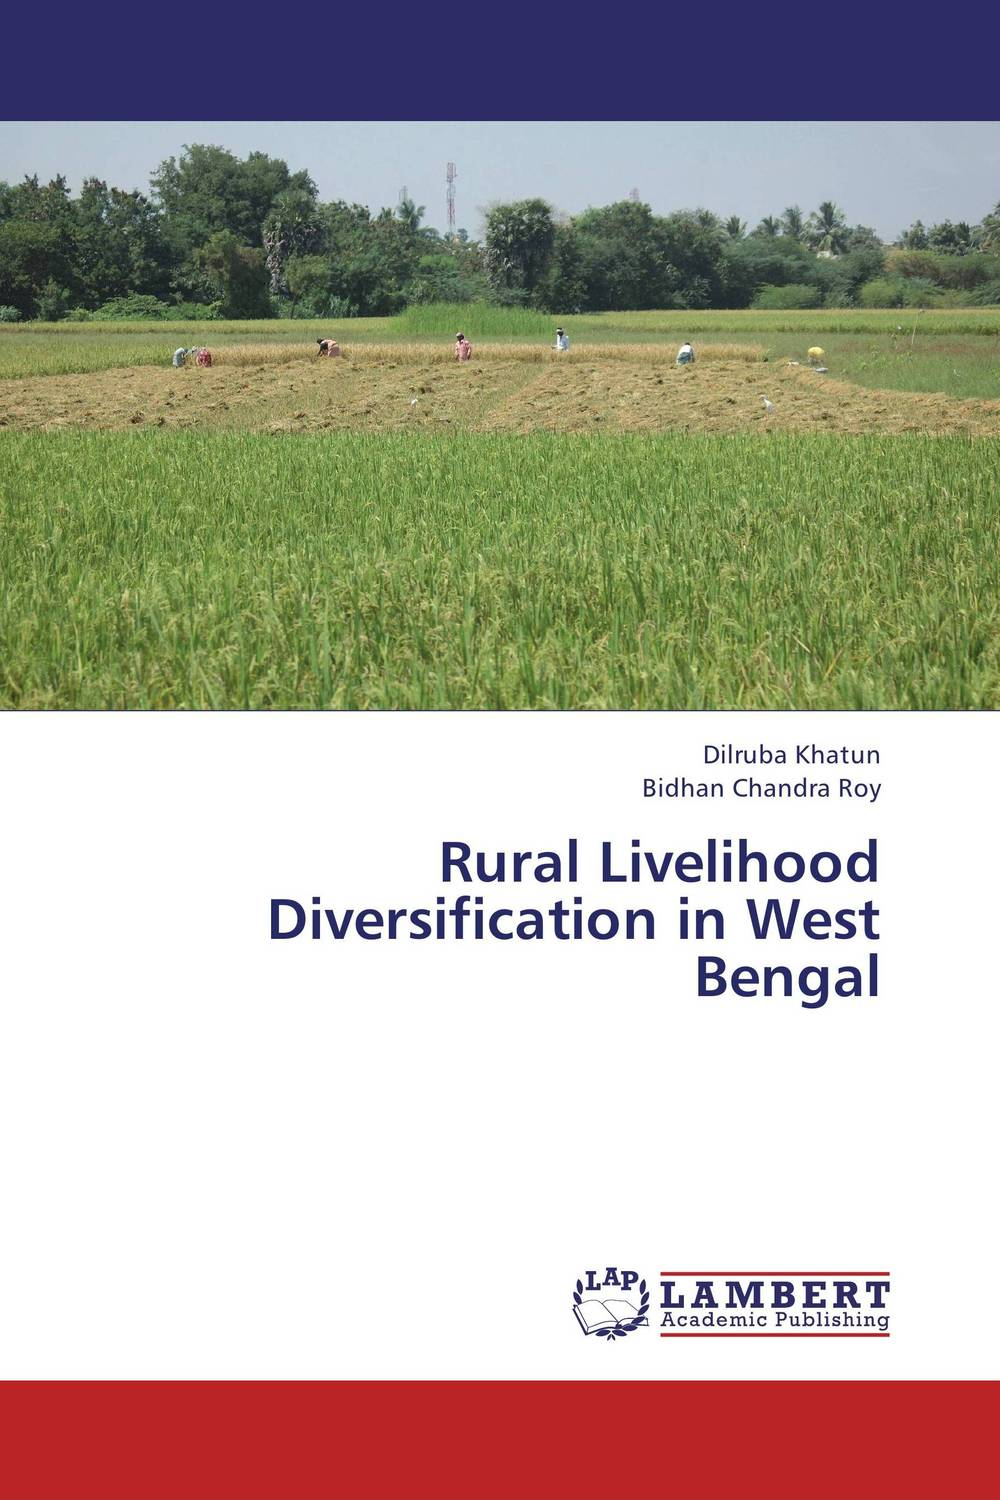 Rural Livelihood Diversification in West Bengal provash das piyali mishra and madhab chandra ghosh fitness and skill of rural and urban soccer players of west bengal